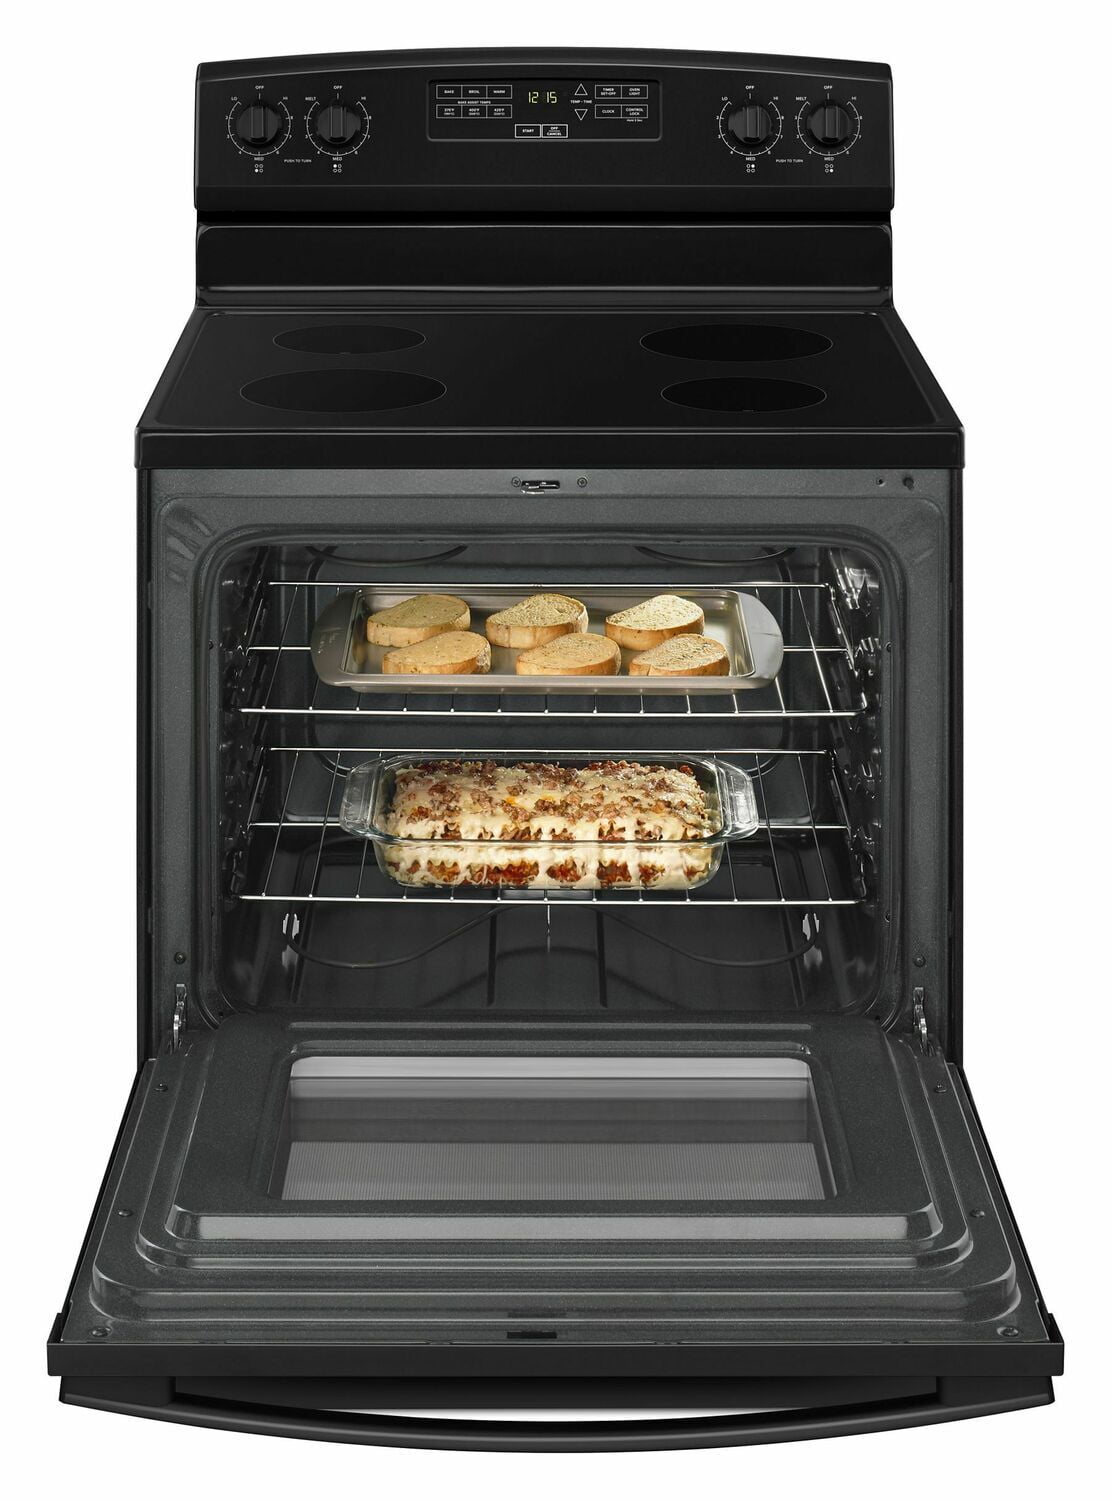 Load image into Gallery viewer, Amana AER6303MFB 30-Inch Electric Range With Extra-Large Oven Window - Black